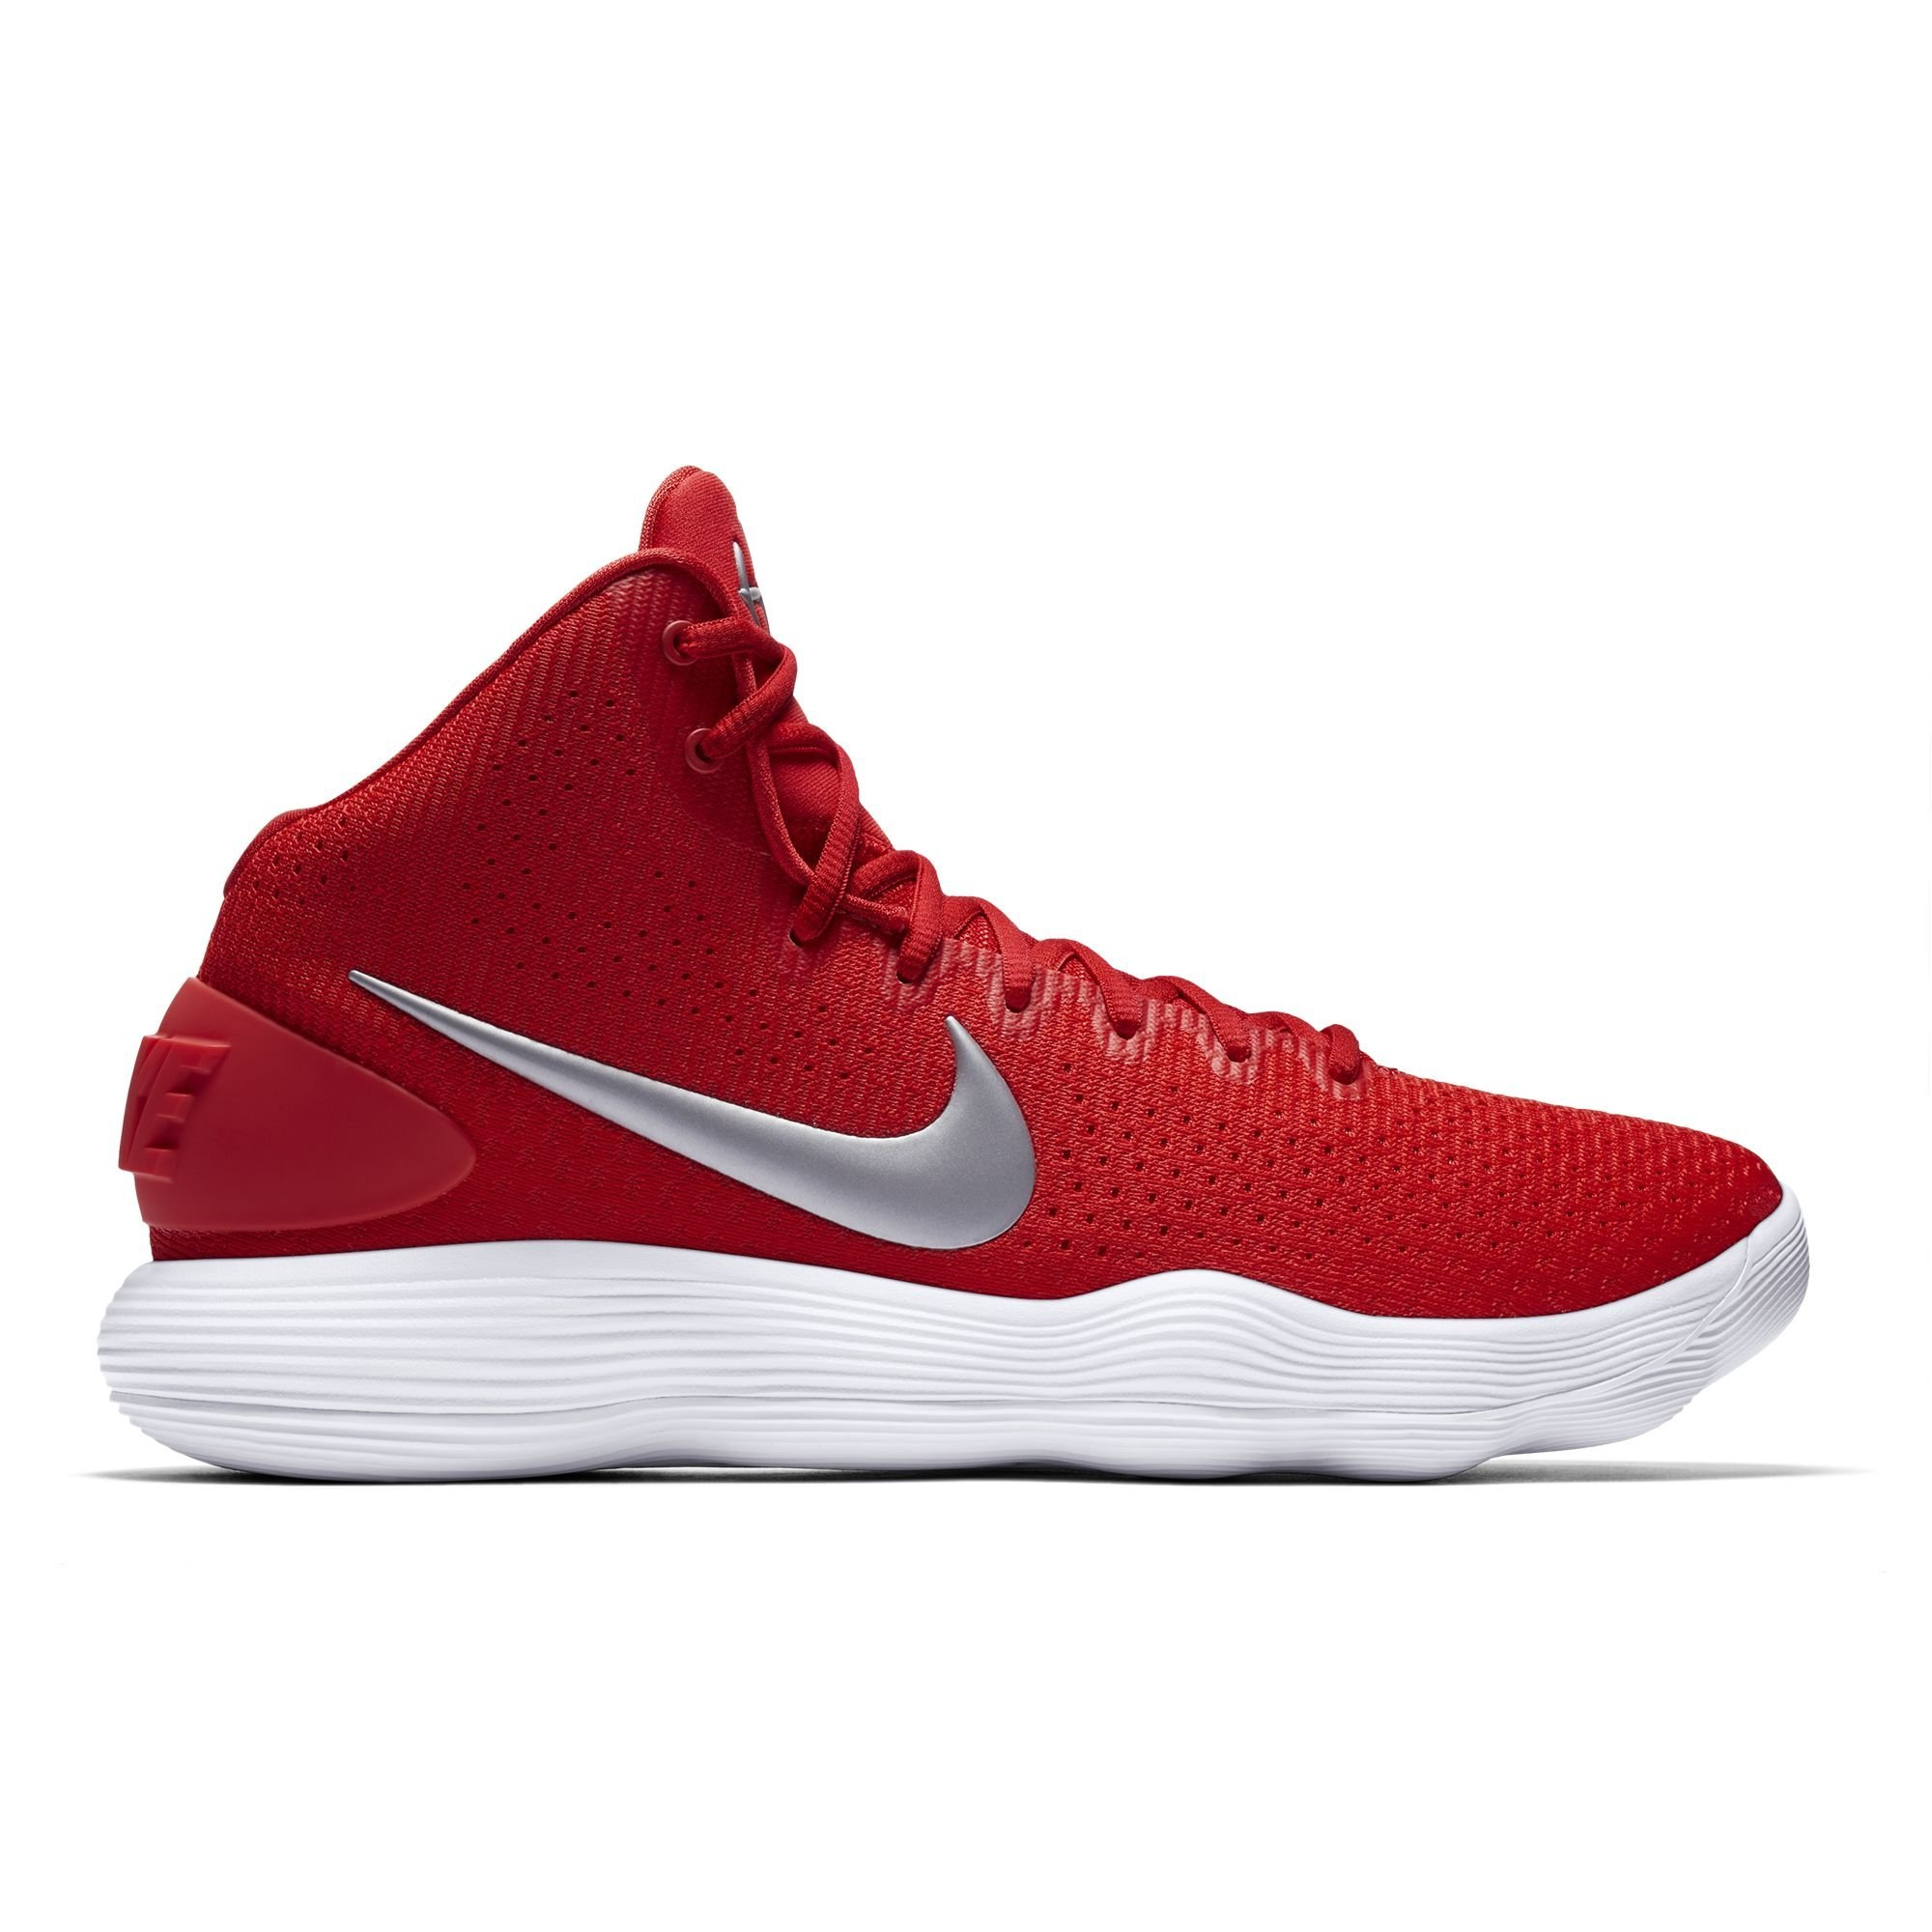 5d24c74cc010 Galleon - Nike Men s Hyperdunk 2017 TB Basketball Shoe University  Red Metallic Silver White Size 9.5 M US